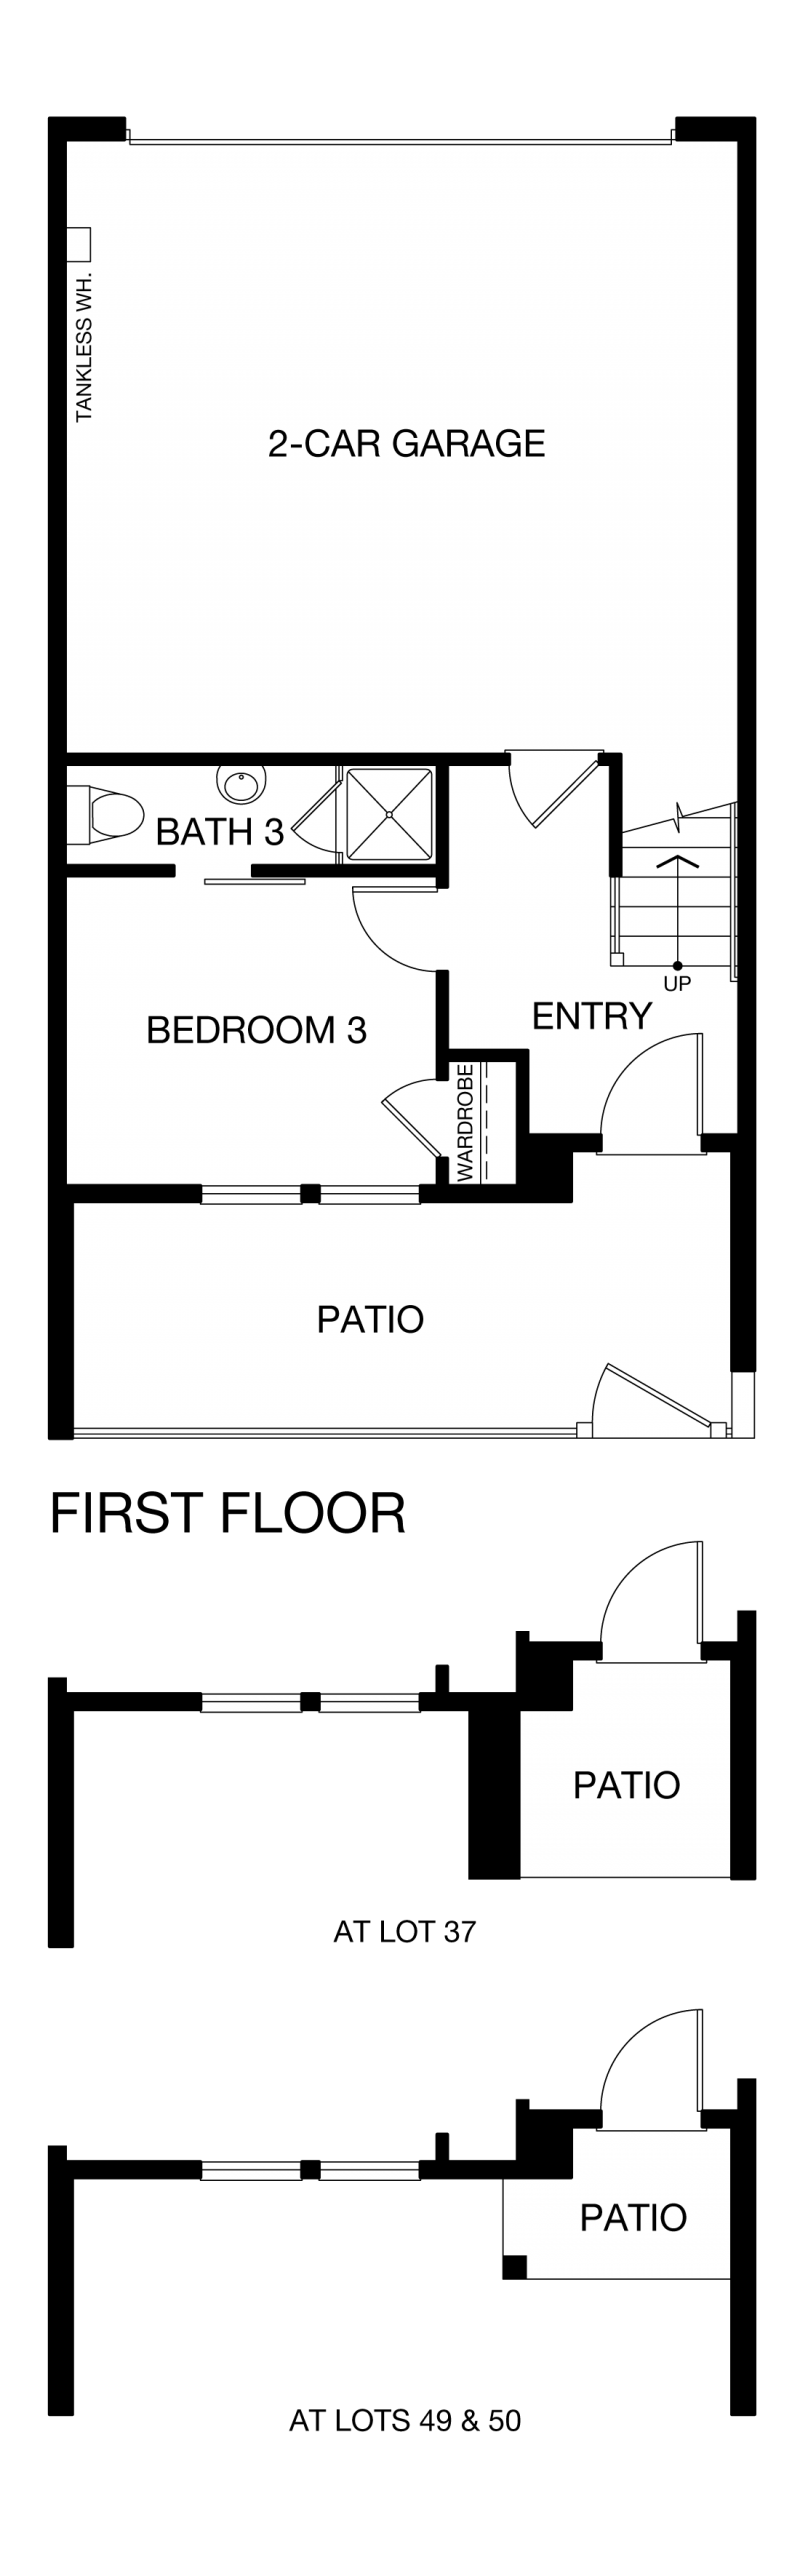 Prism Plan 1 - First Floor